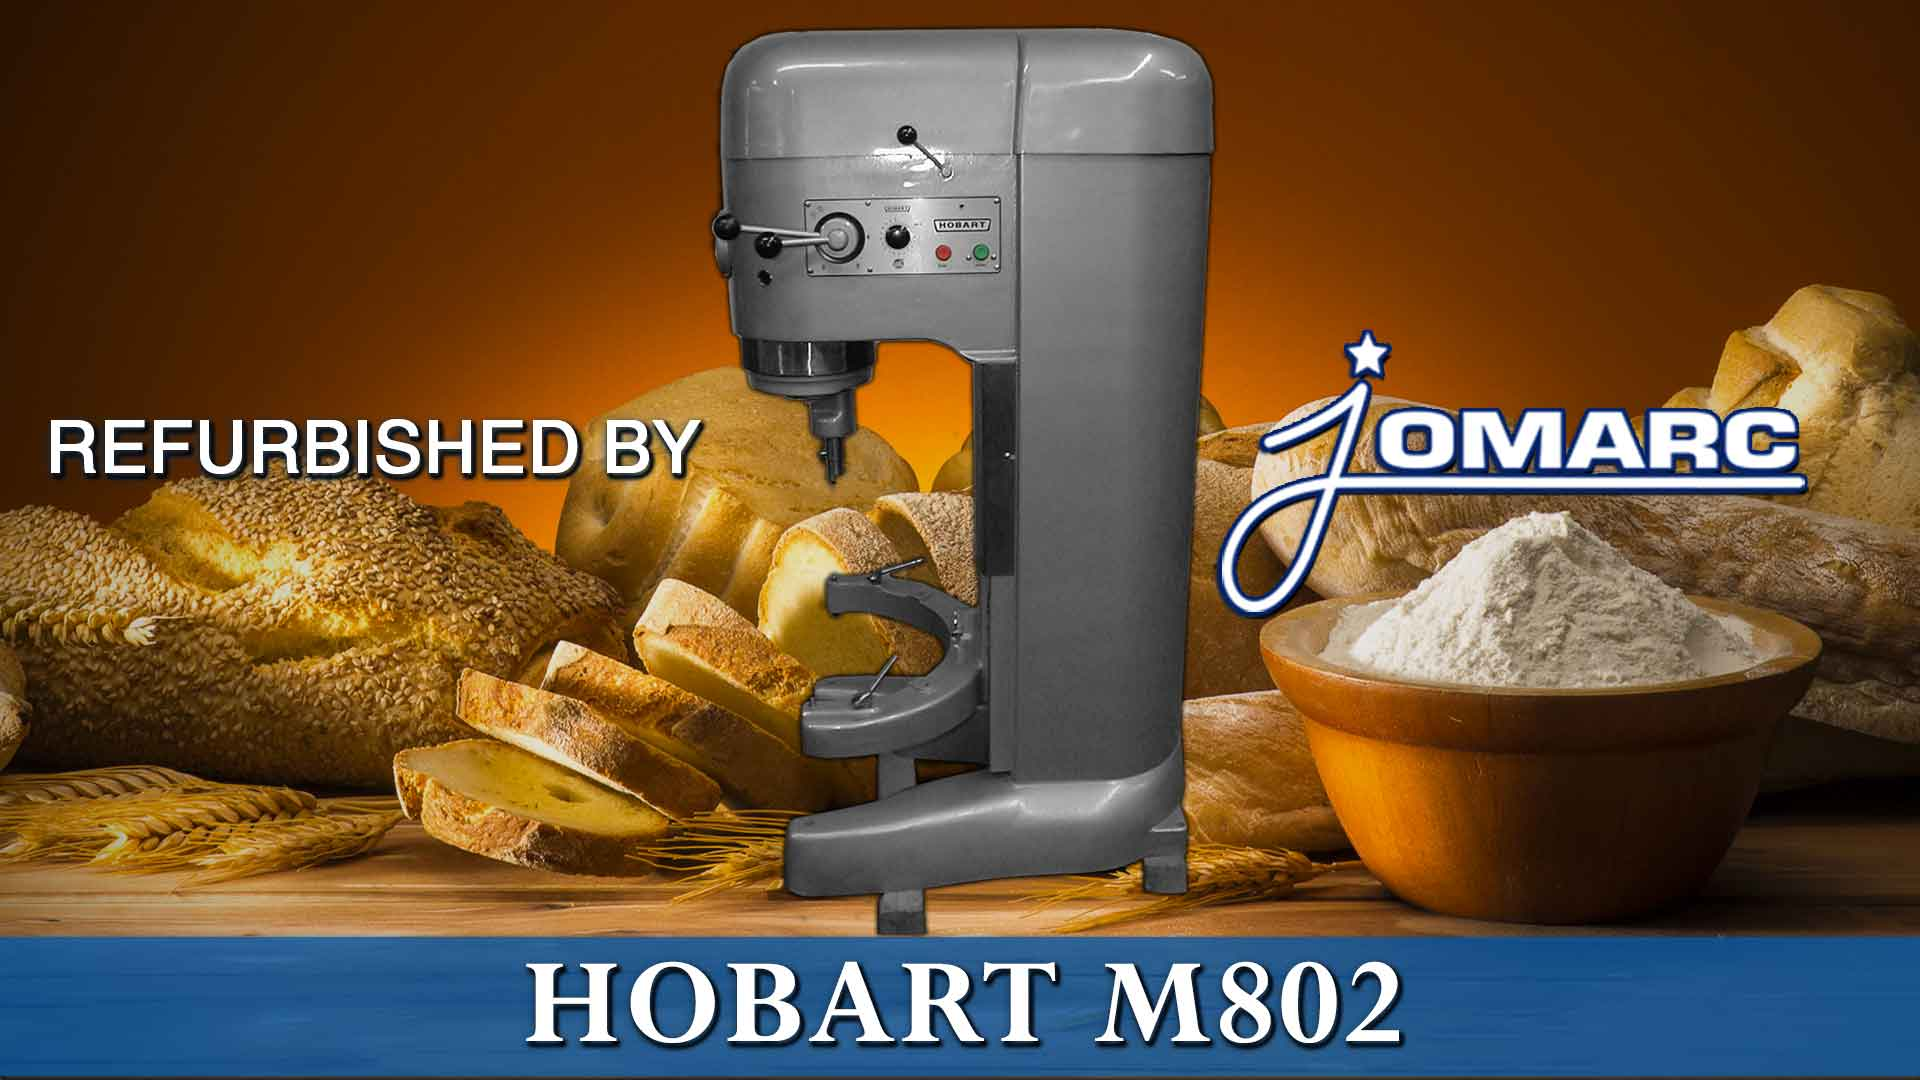 REFURBISHED HOBART MIXER m-802 BY JOMARC